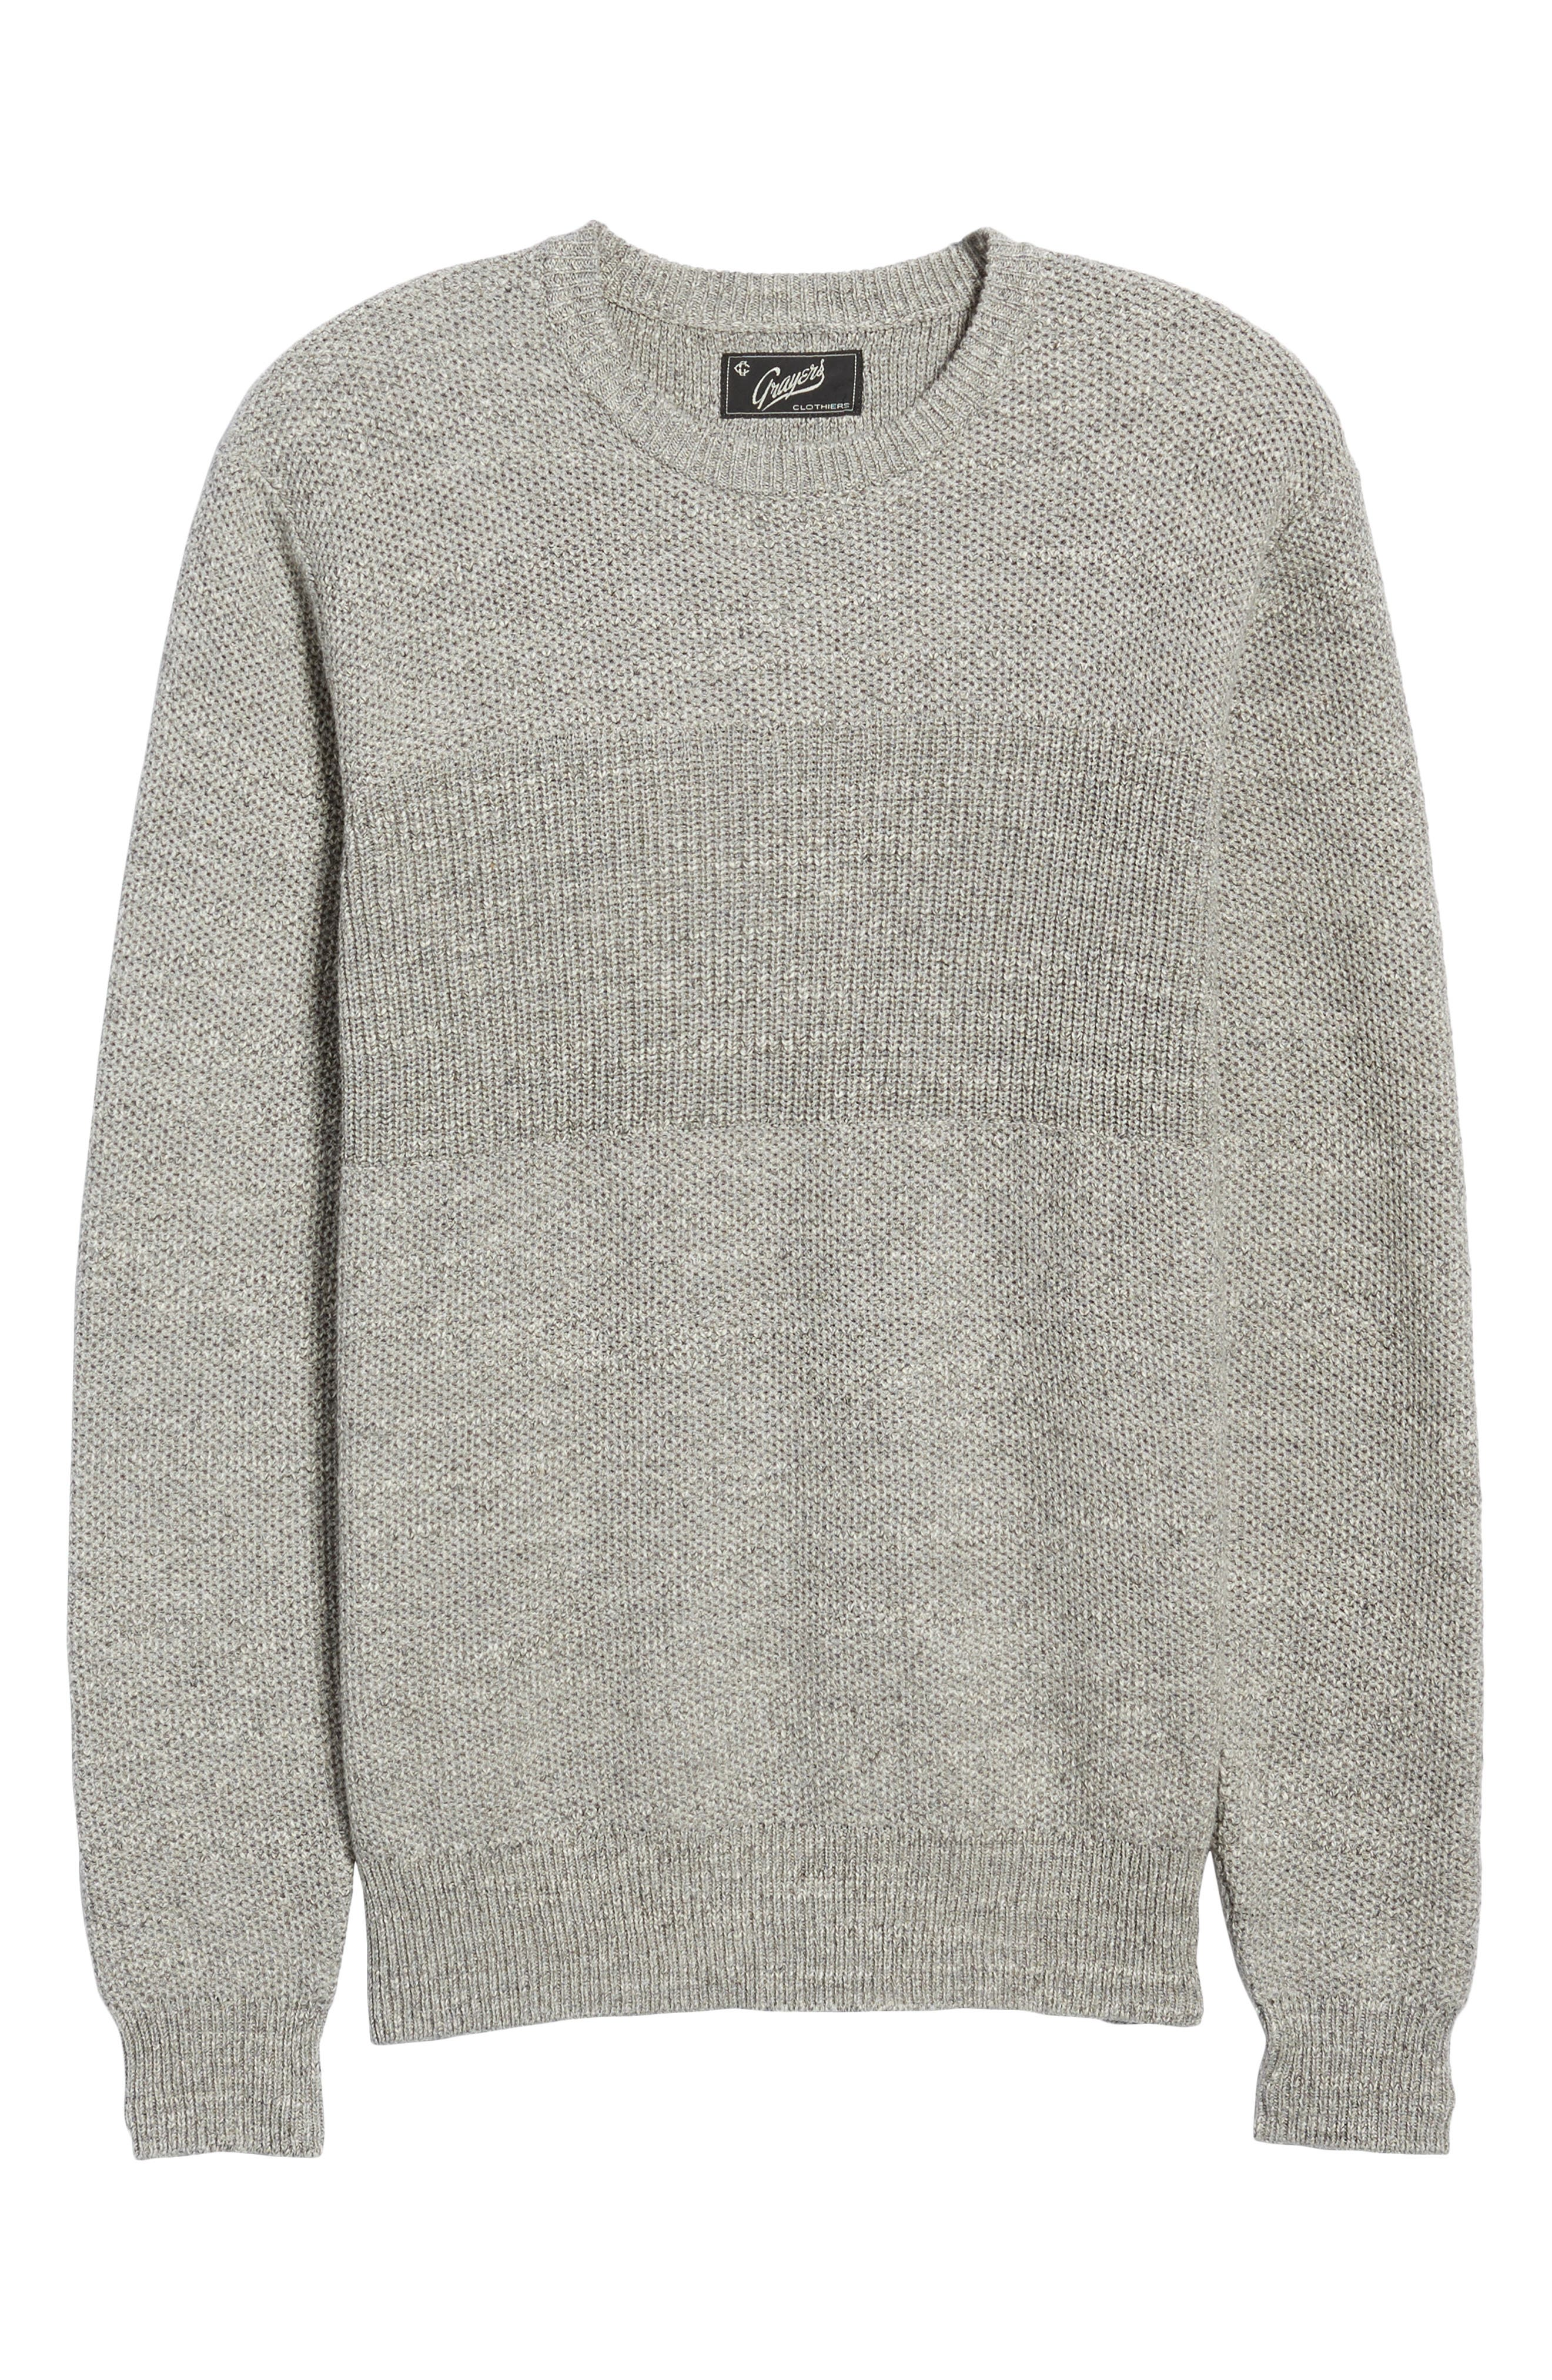 Ardsley Textured Sweater,                             Alternate thumbnail 6, color,                             Grey Heather